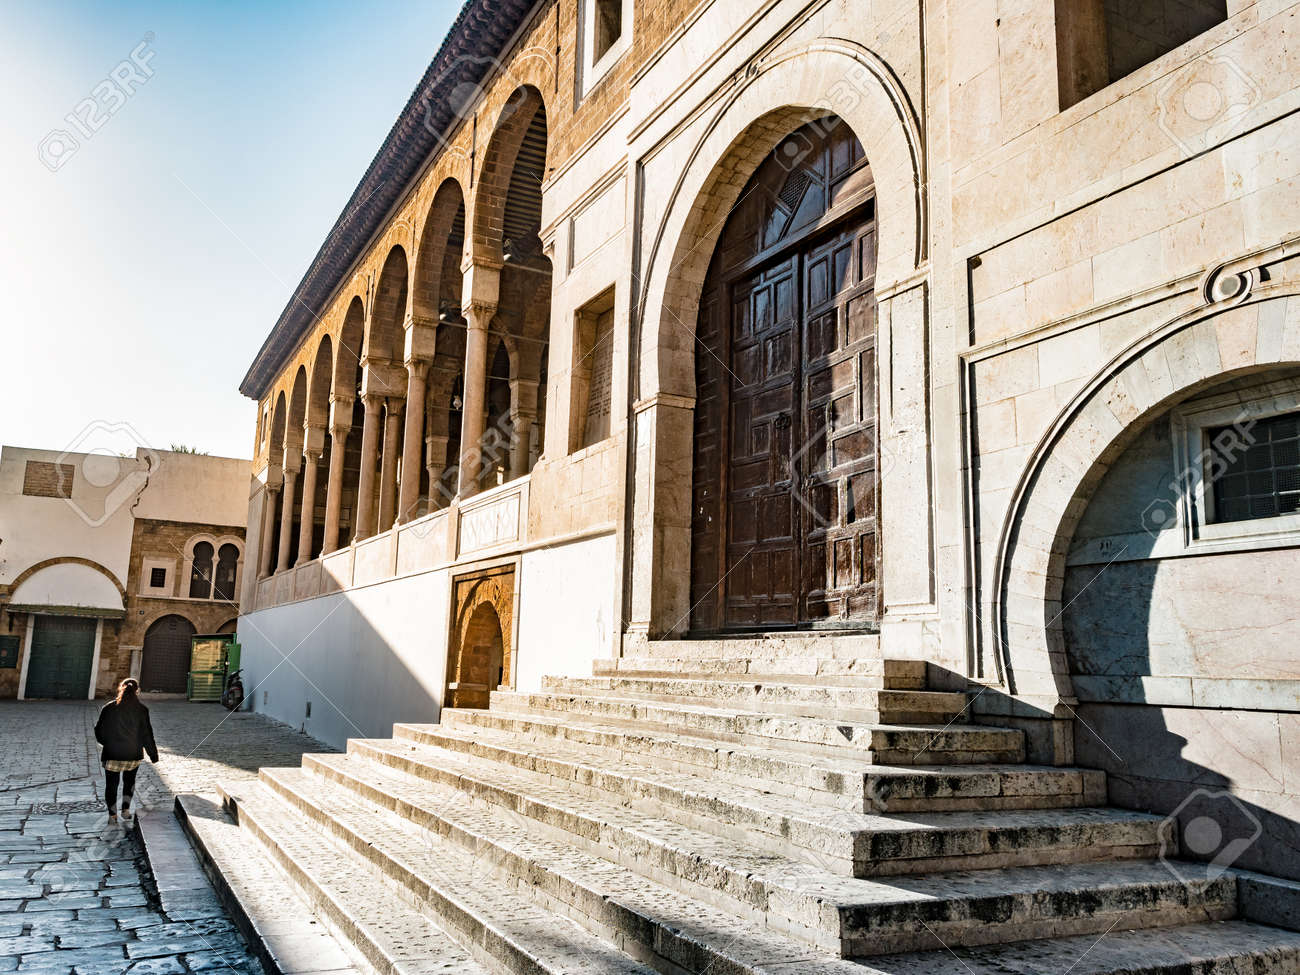 Al Zaytuna Mosque In Tunis Tunisia Main Entrance With Stairs Stock Photo Picture And Royalty Free Image Image 120243992